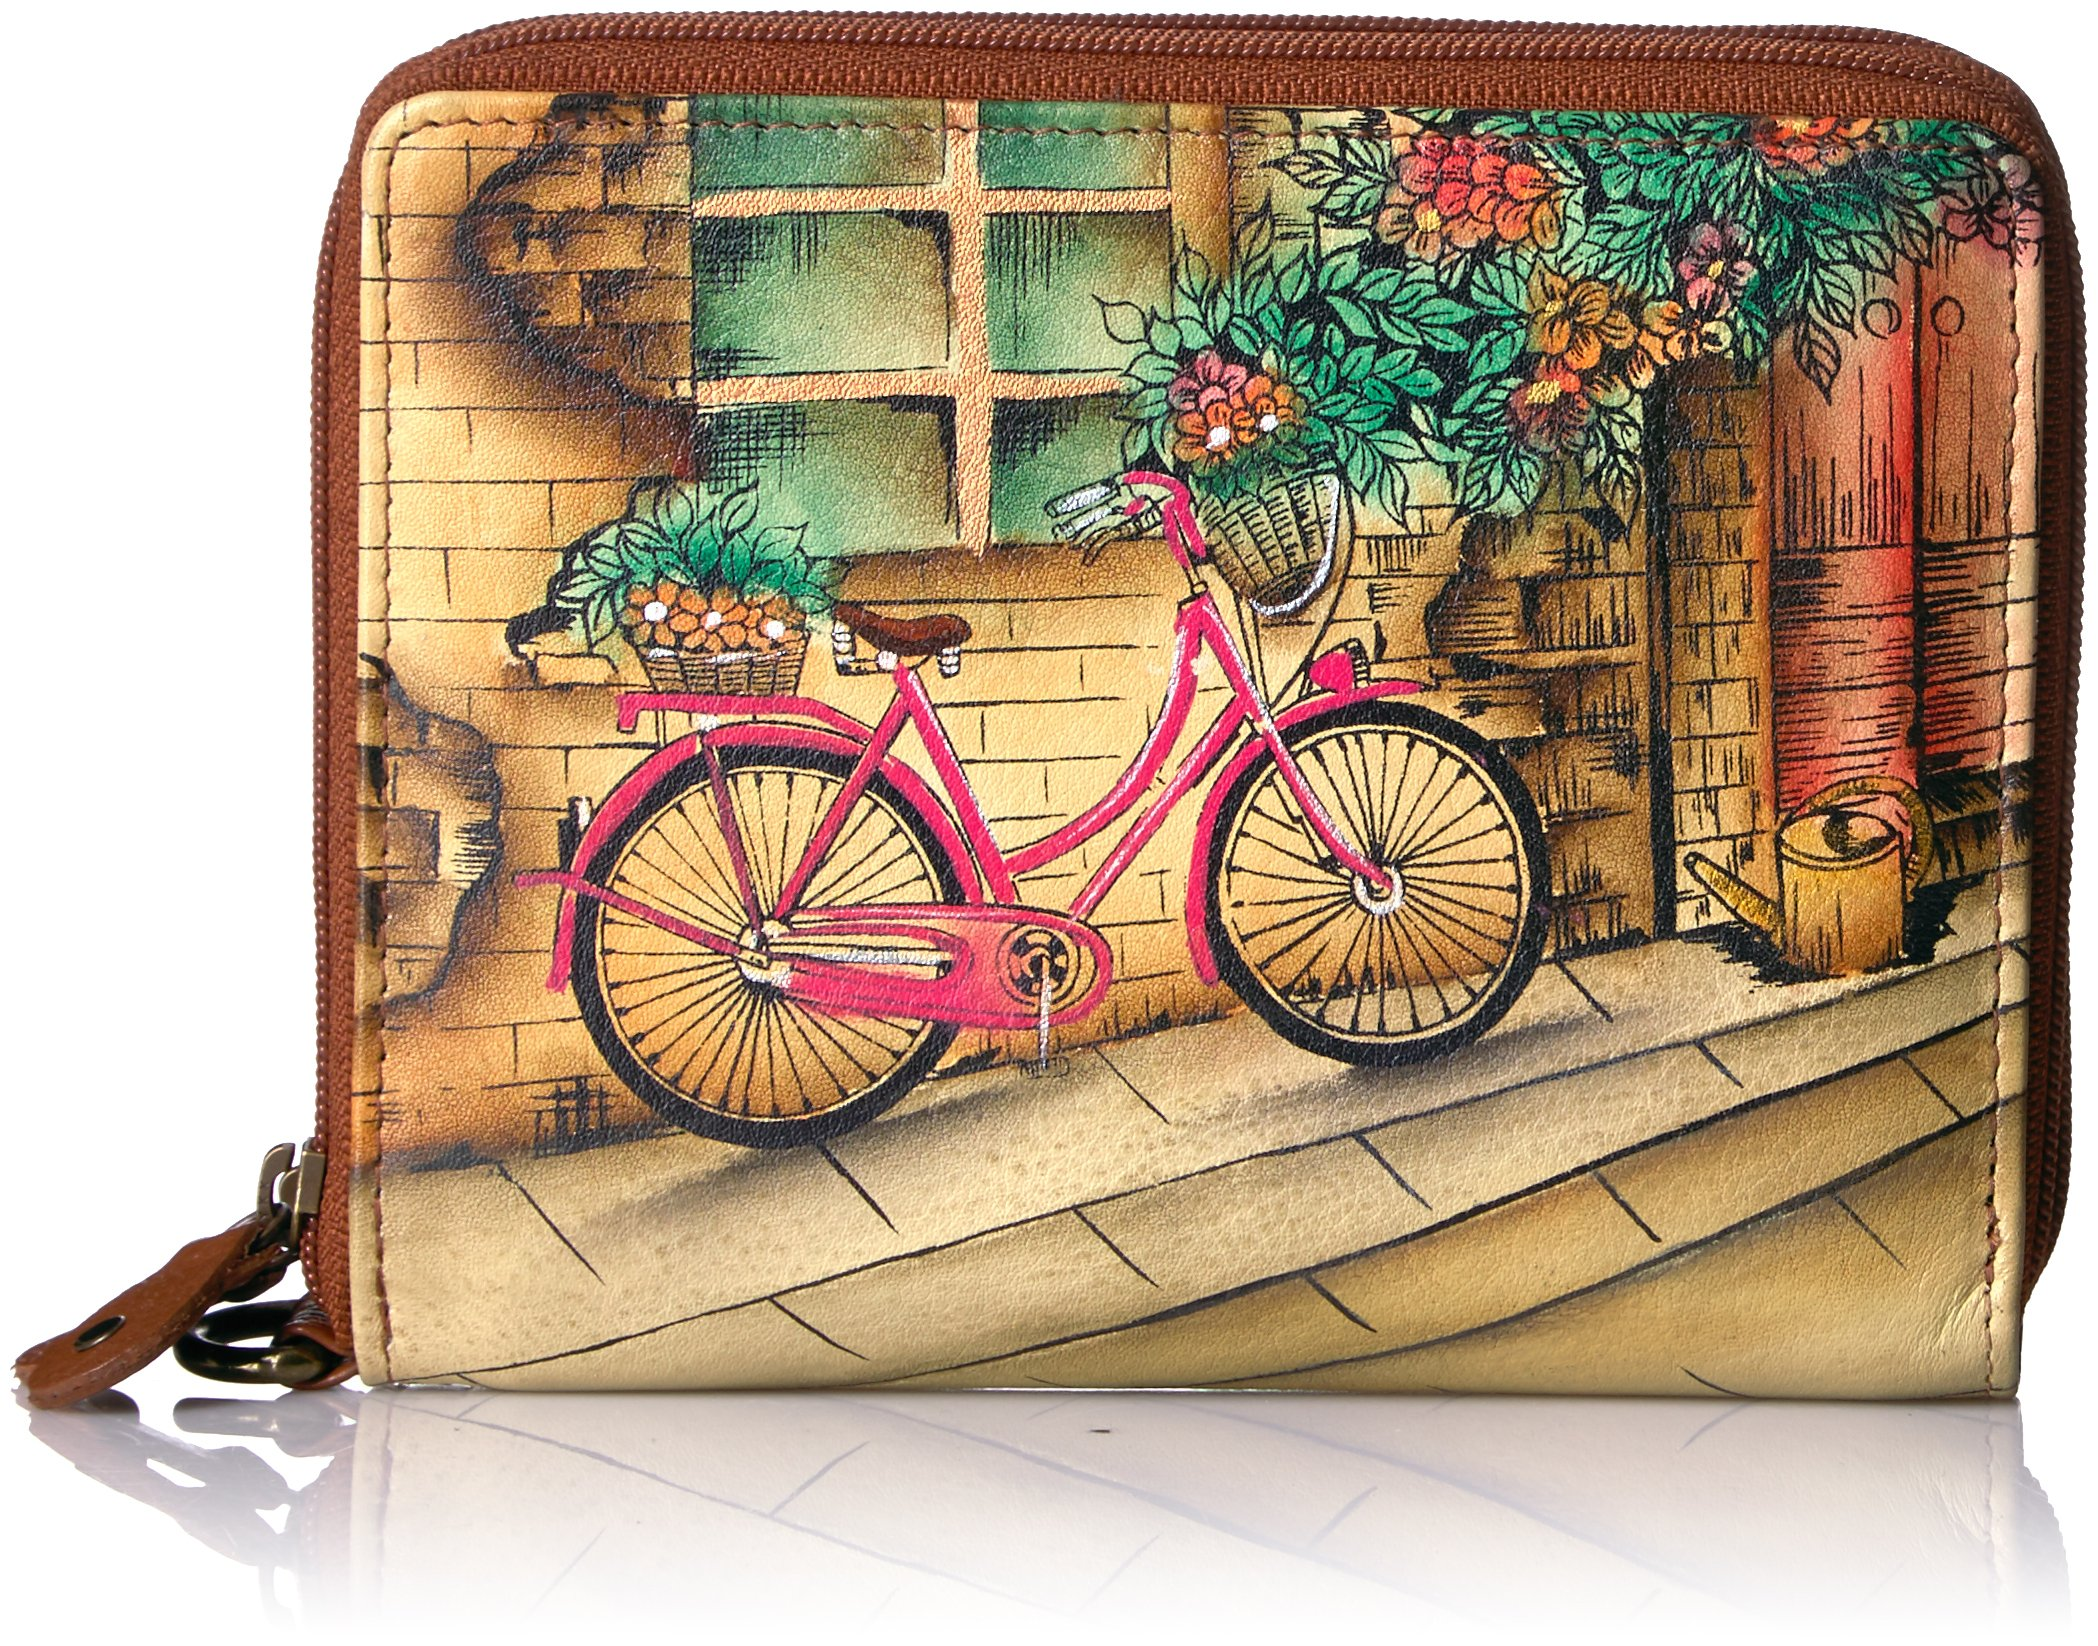 Anuschka Handpainted Leather Zip-around Organiser Clutch Wallet-vintage Bike Wallet, Vintage Bike, One Size